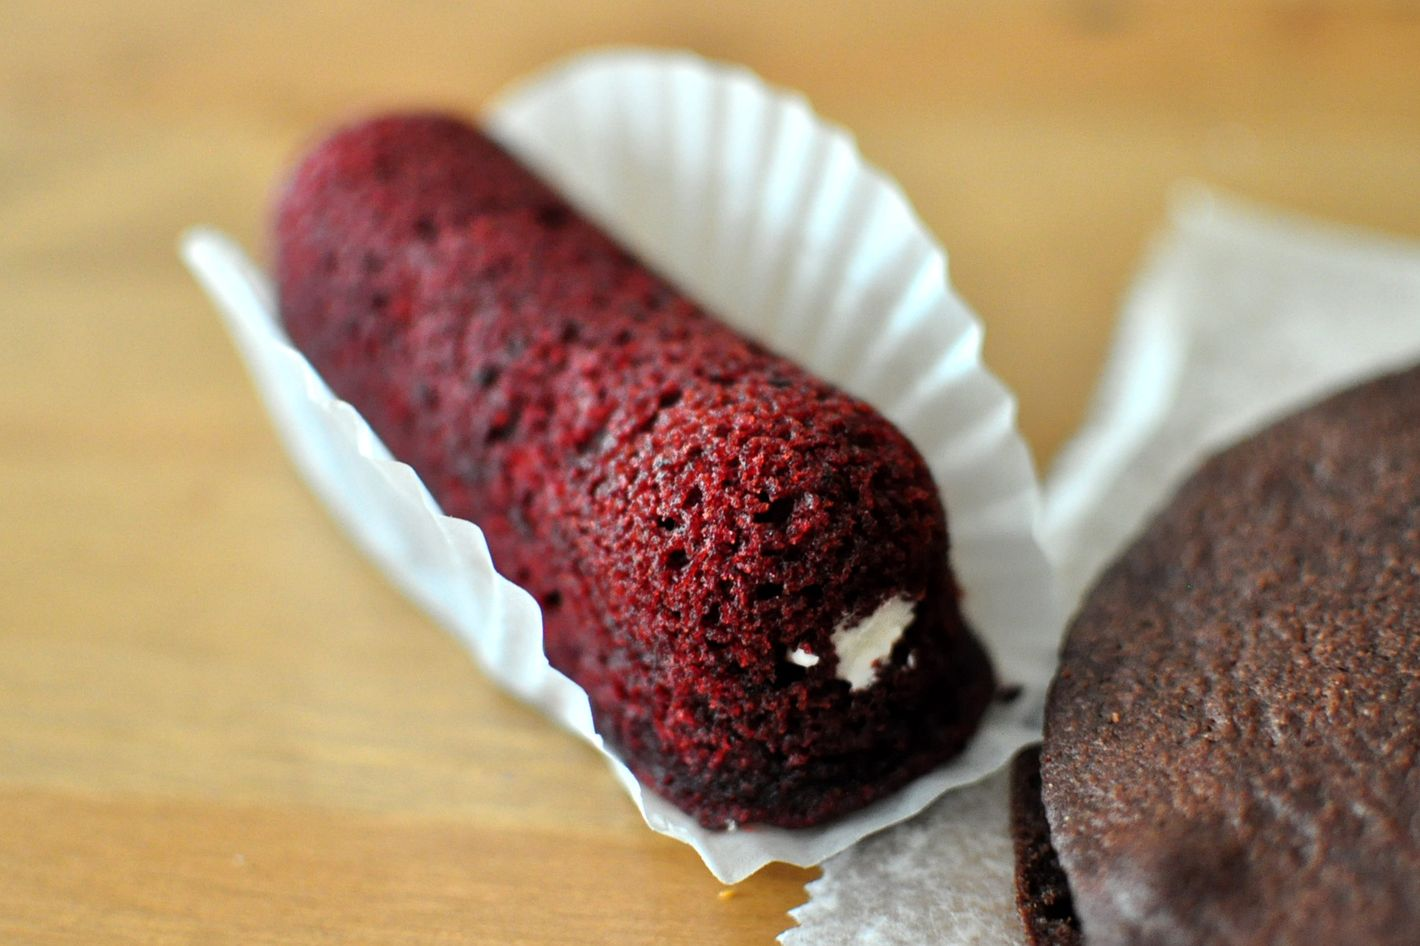 Blot your tears with Plenty's gussied-up red velvet Twinkies.